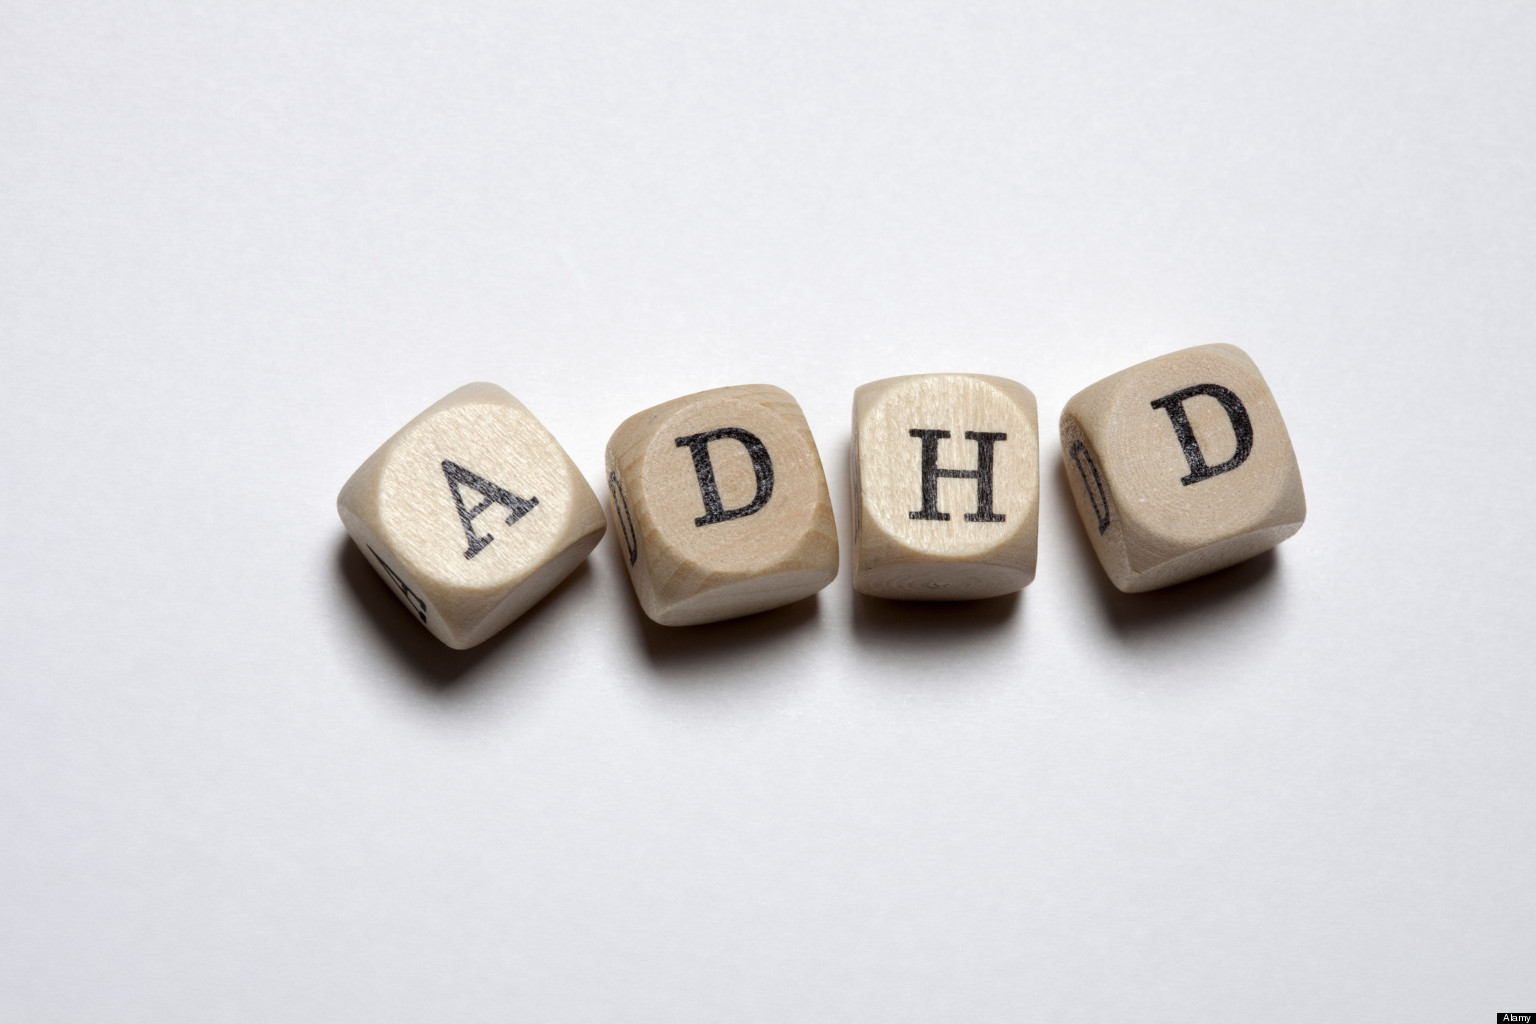 Lettered cubes arranged to spell the abbreviation ADHD. Image shot 2012. Exact date unknown.